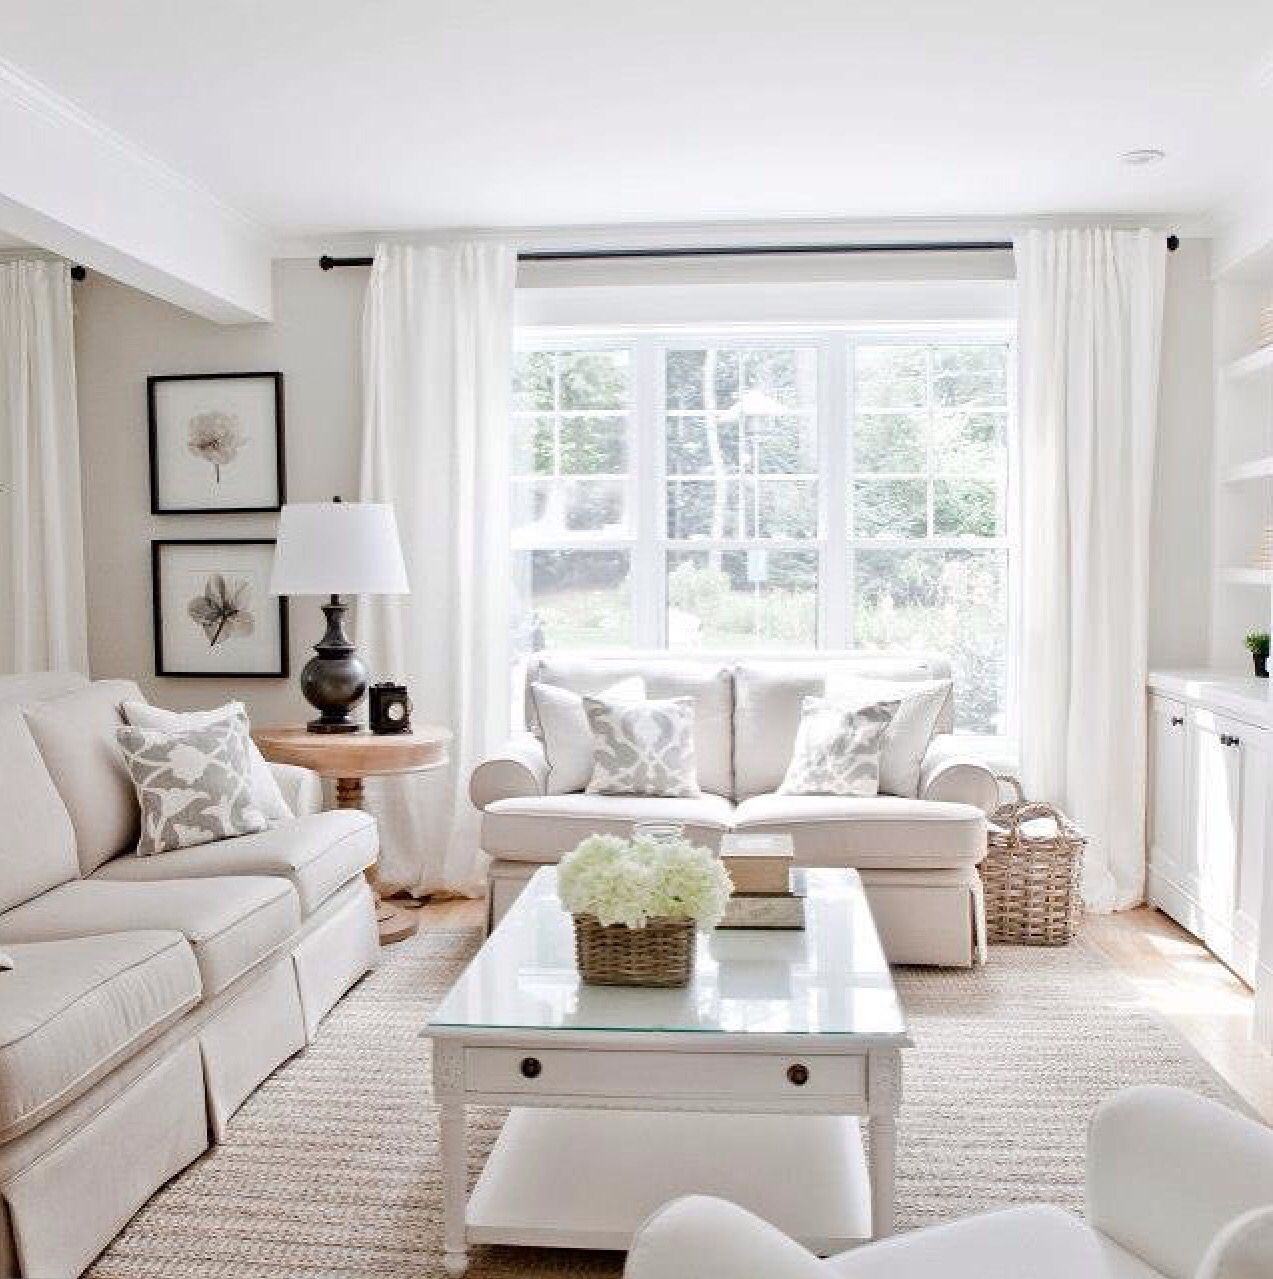 Transitional design modern furnishings white interior - White wooden living room furniture ...